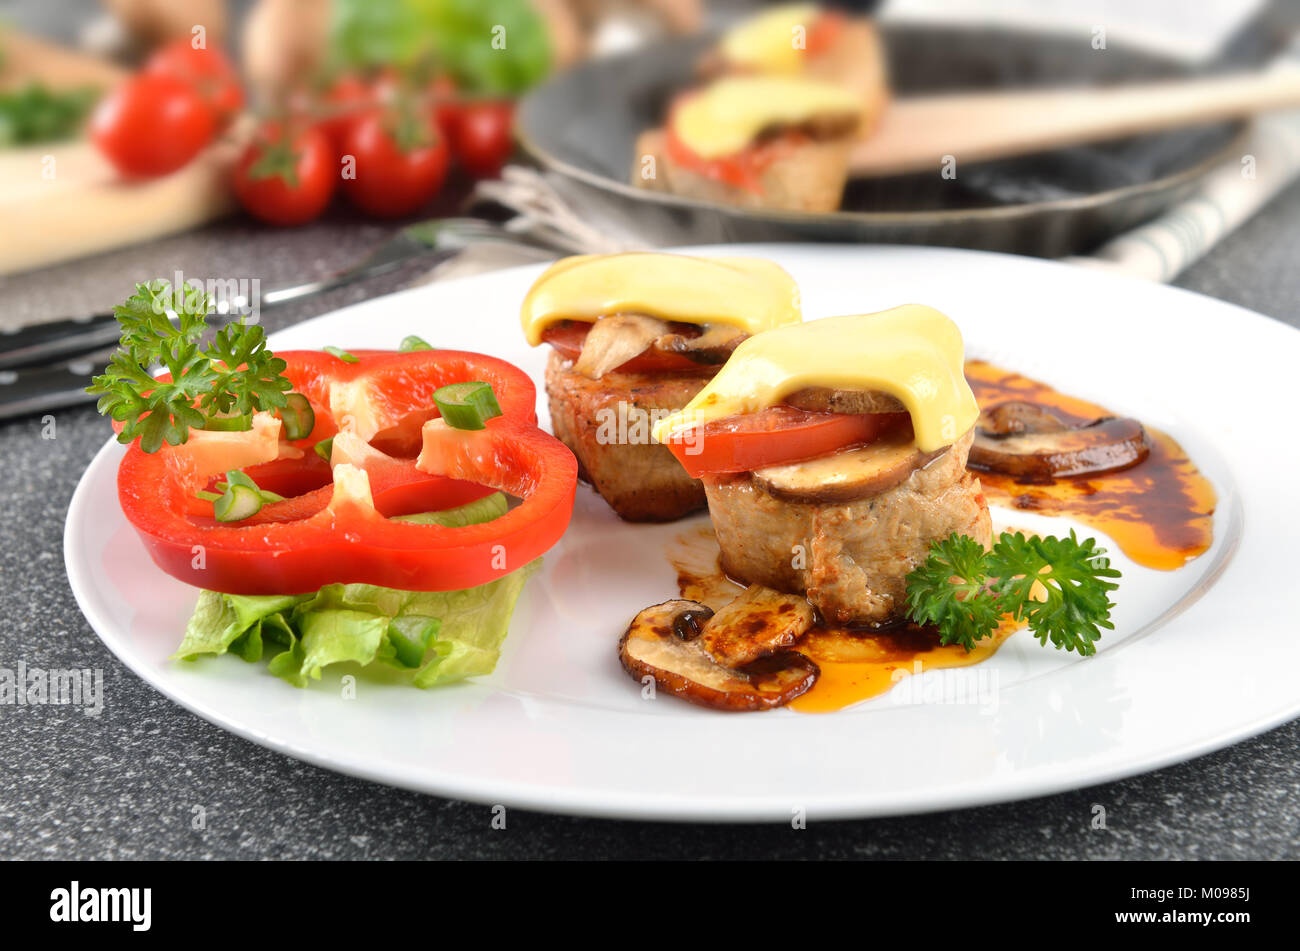 Pork fillets with champignons, tomatoes and melted cheese - Stock Image